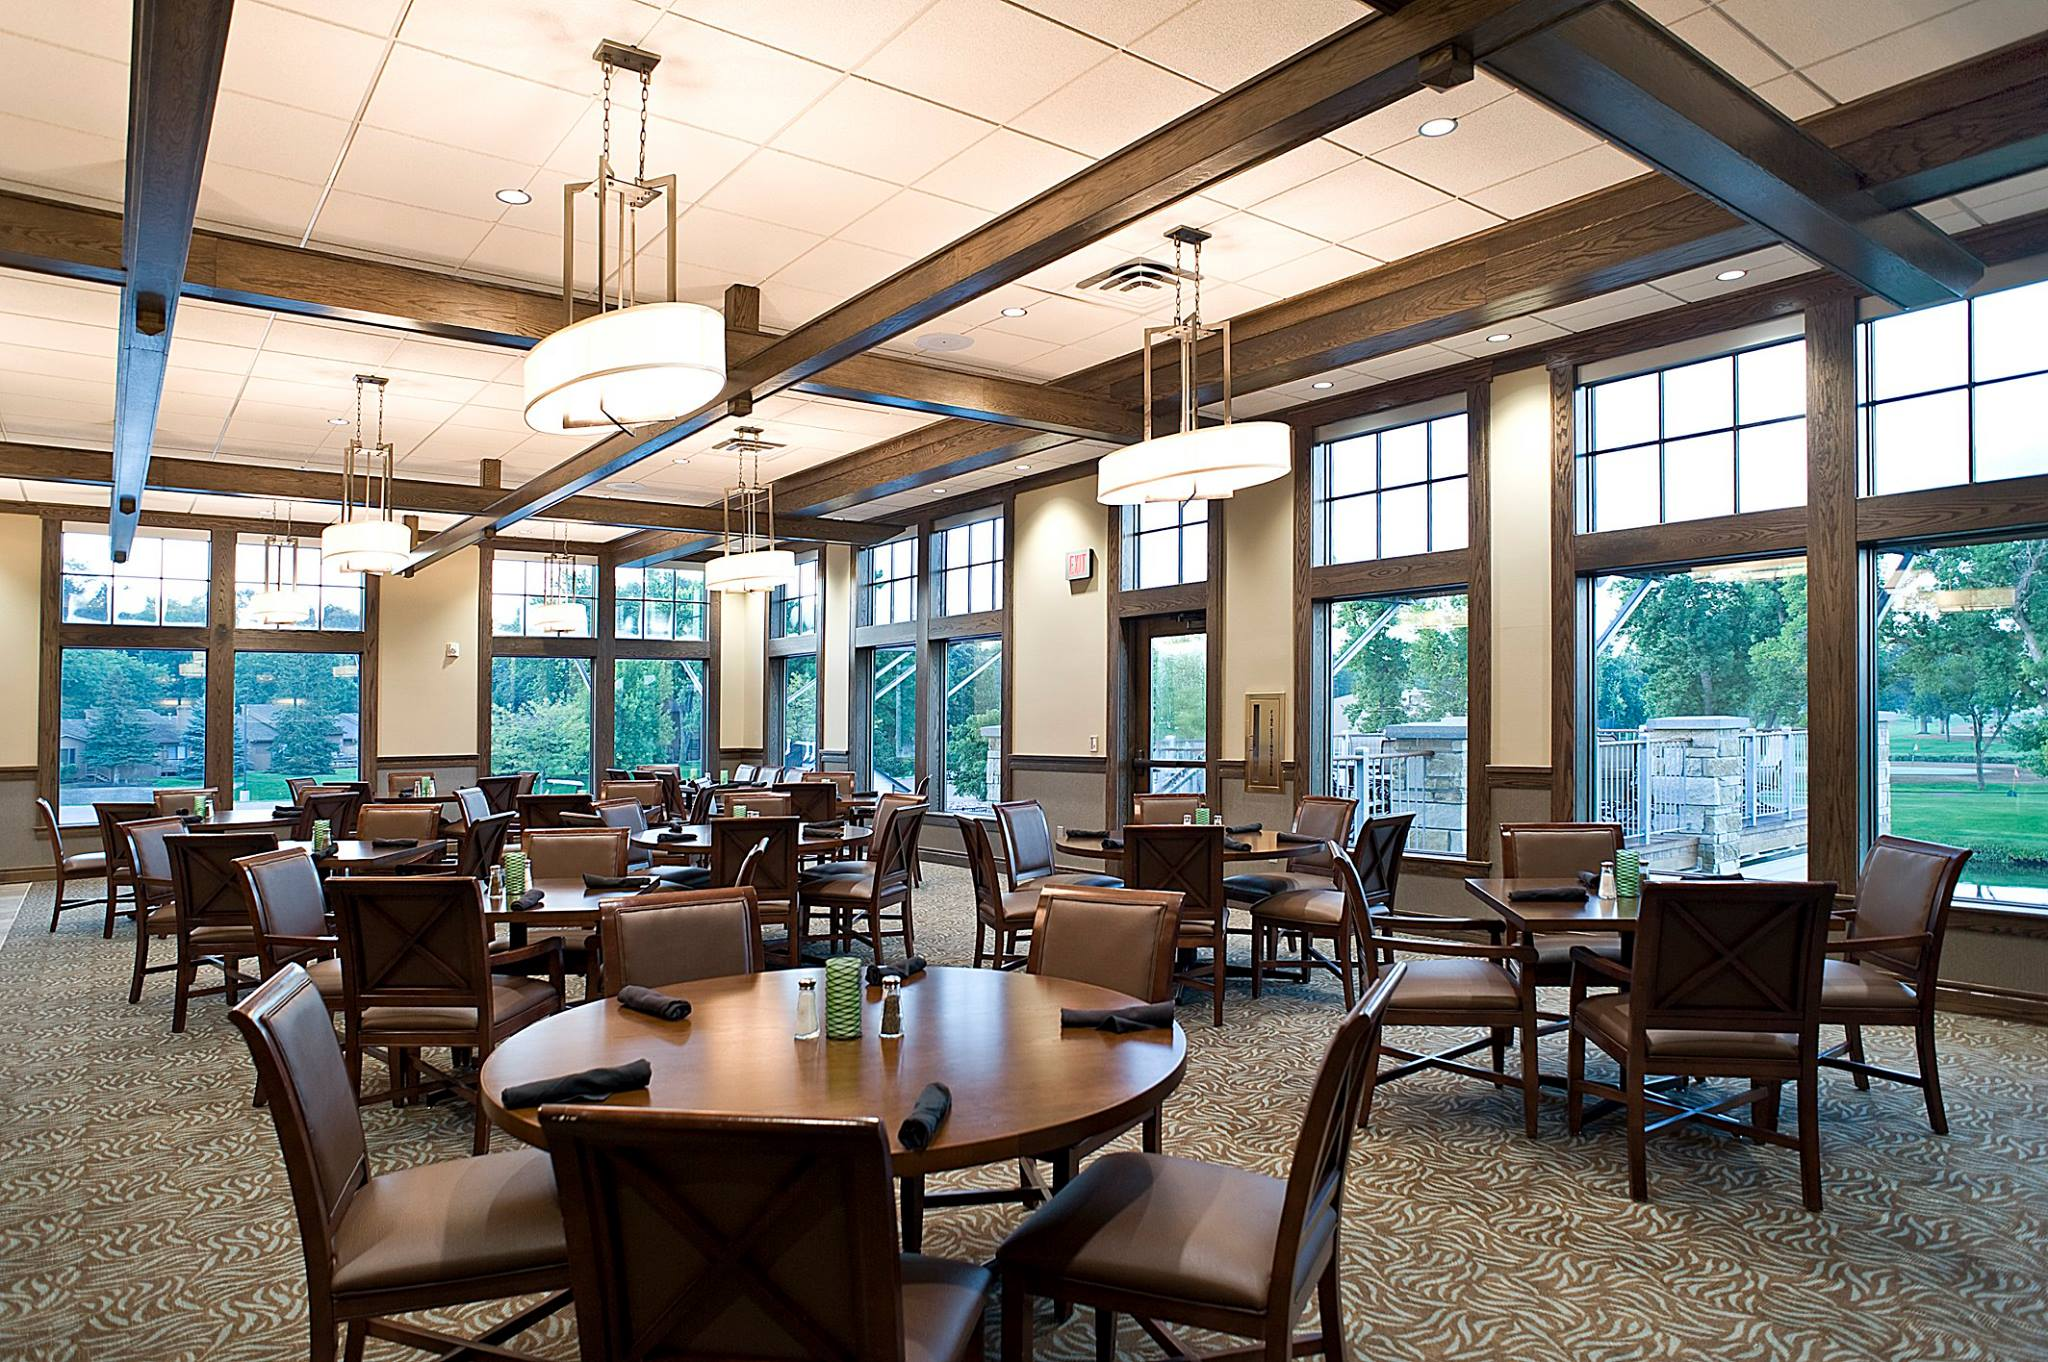 The Country Club of Sioux Falls Member's Dining Room South Dakota